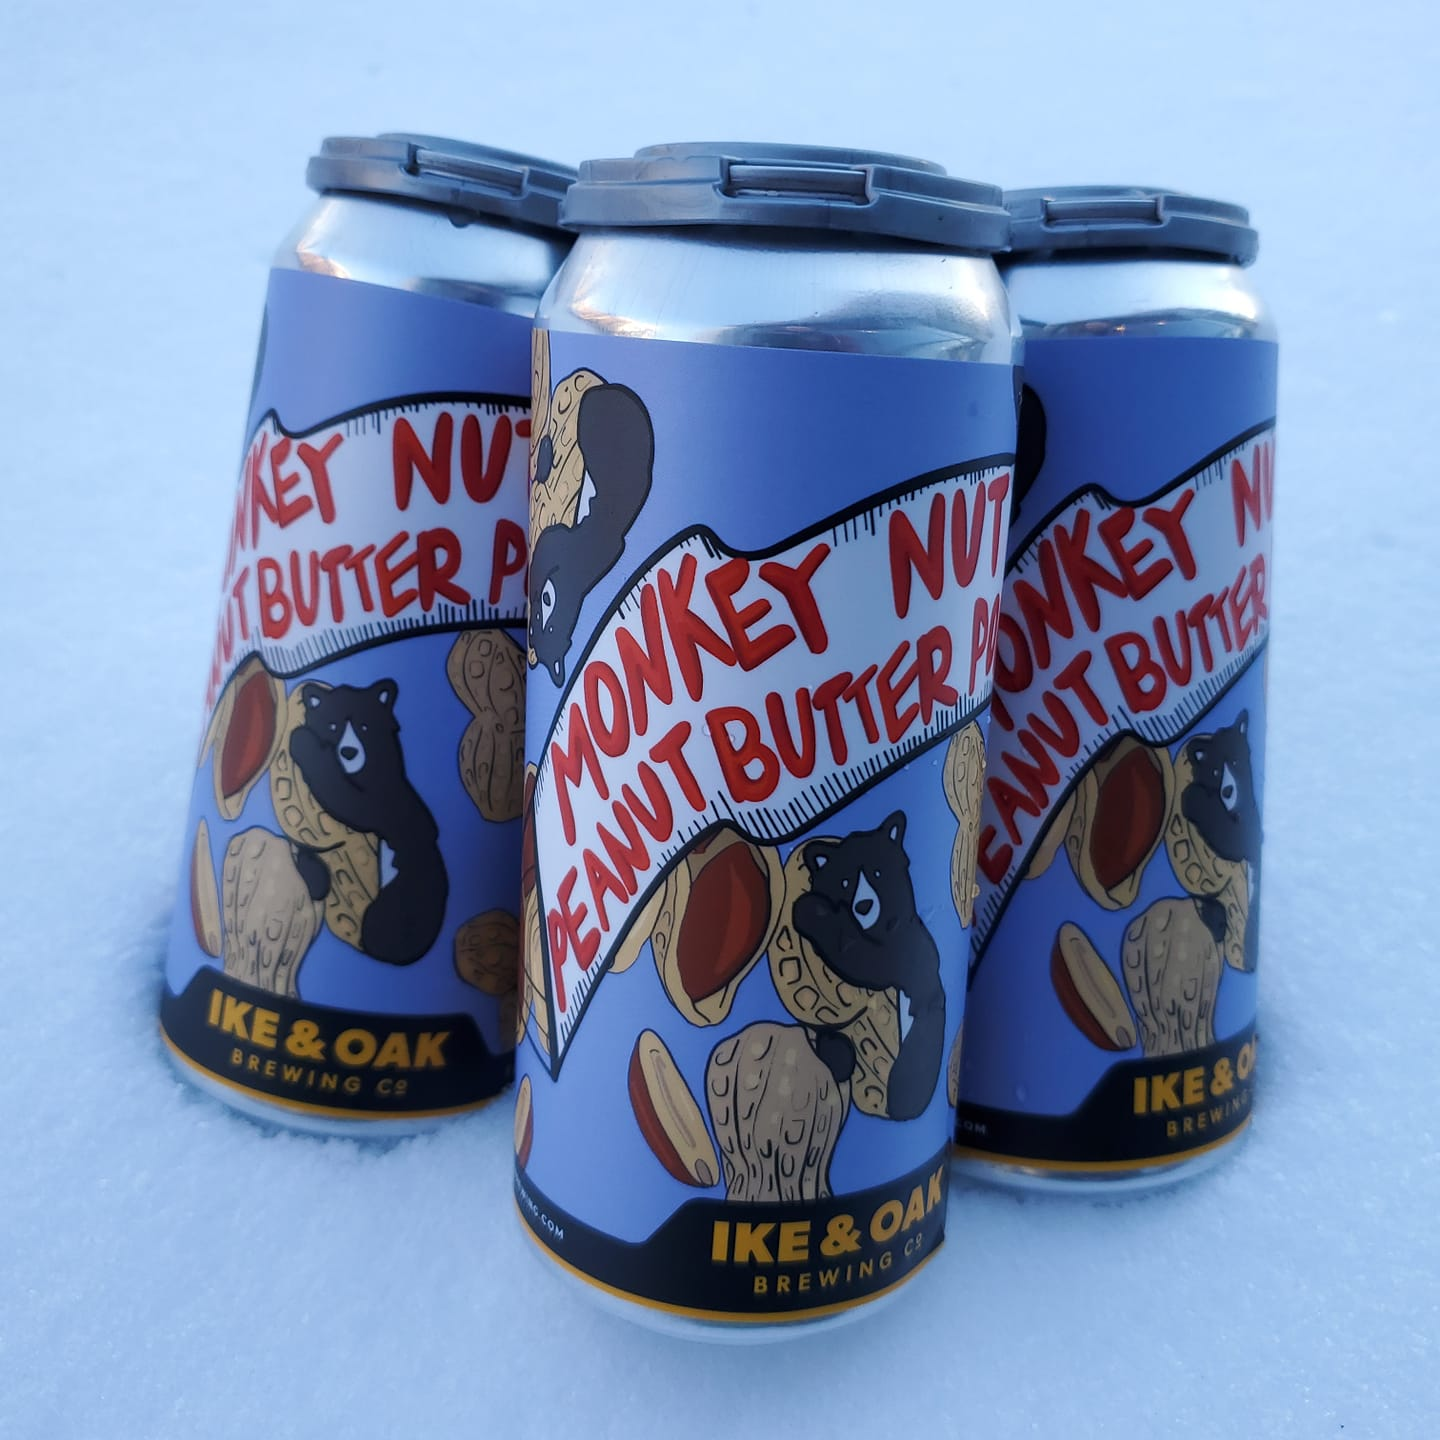 Four pack of Monkey Nut Peanut Butter Porter